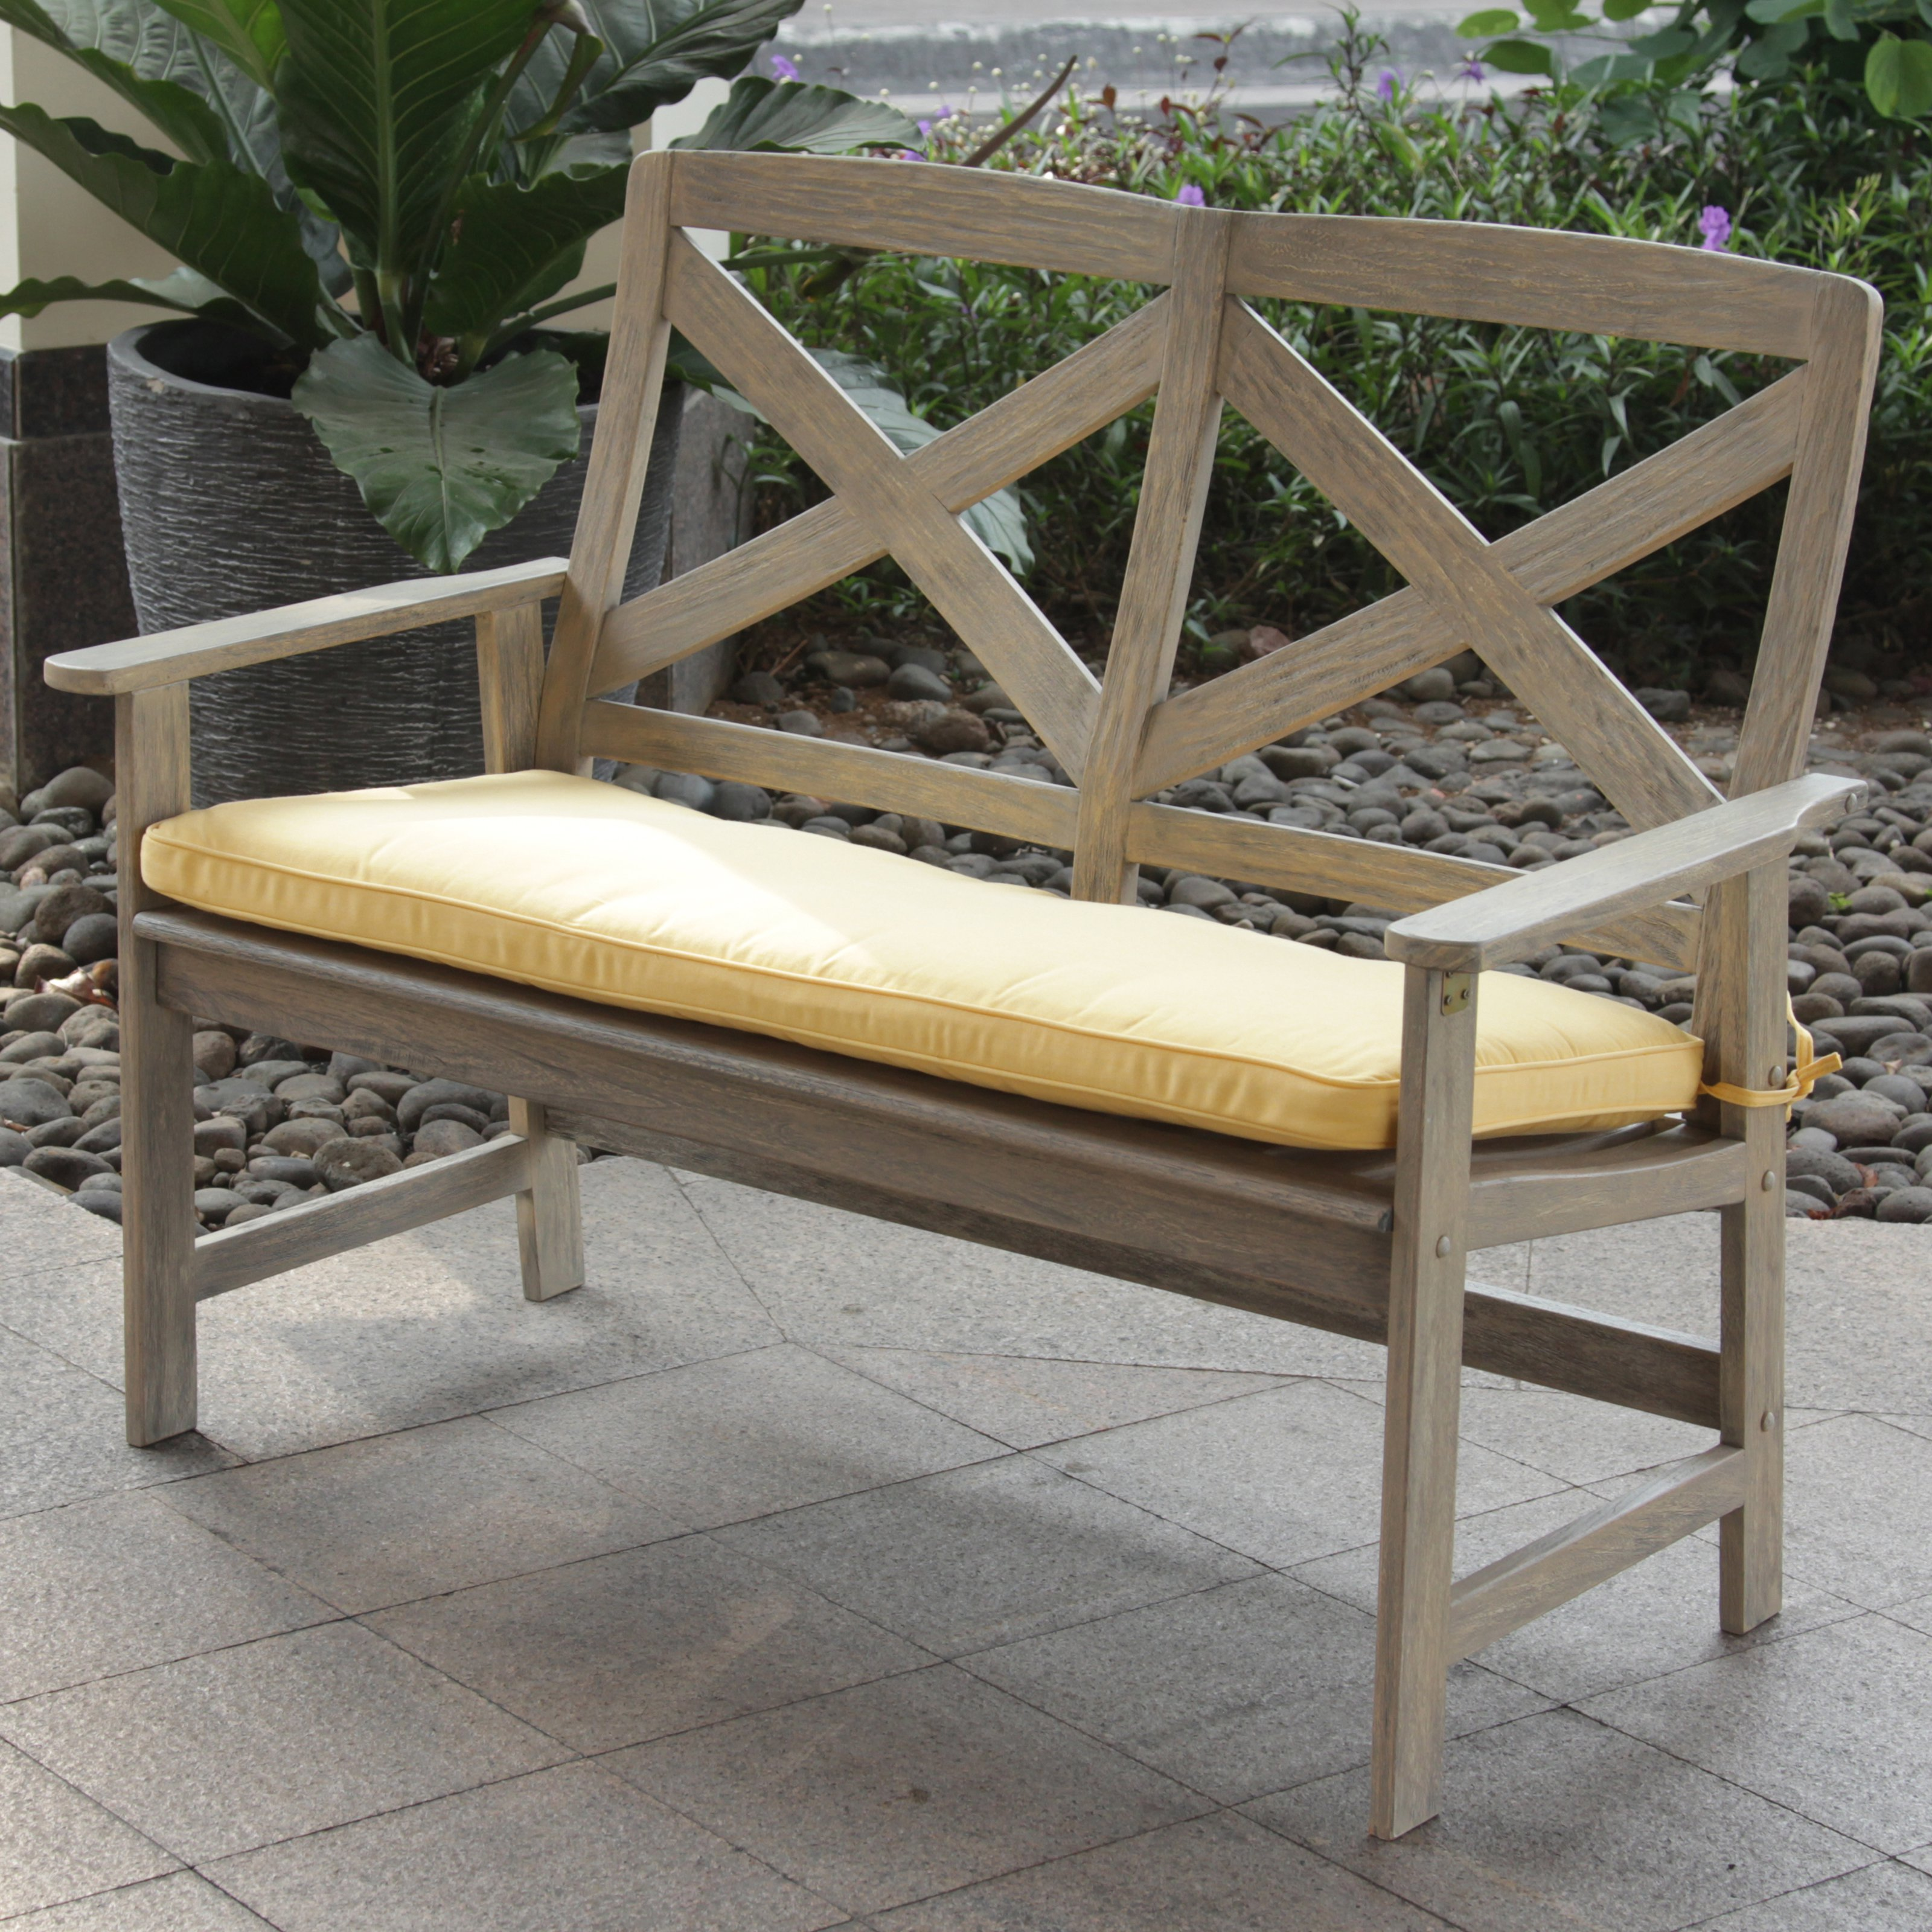 Cambridge Casual 4 ft. Driftwood Outdoor Bench with Cushion